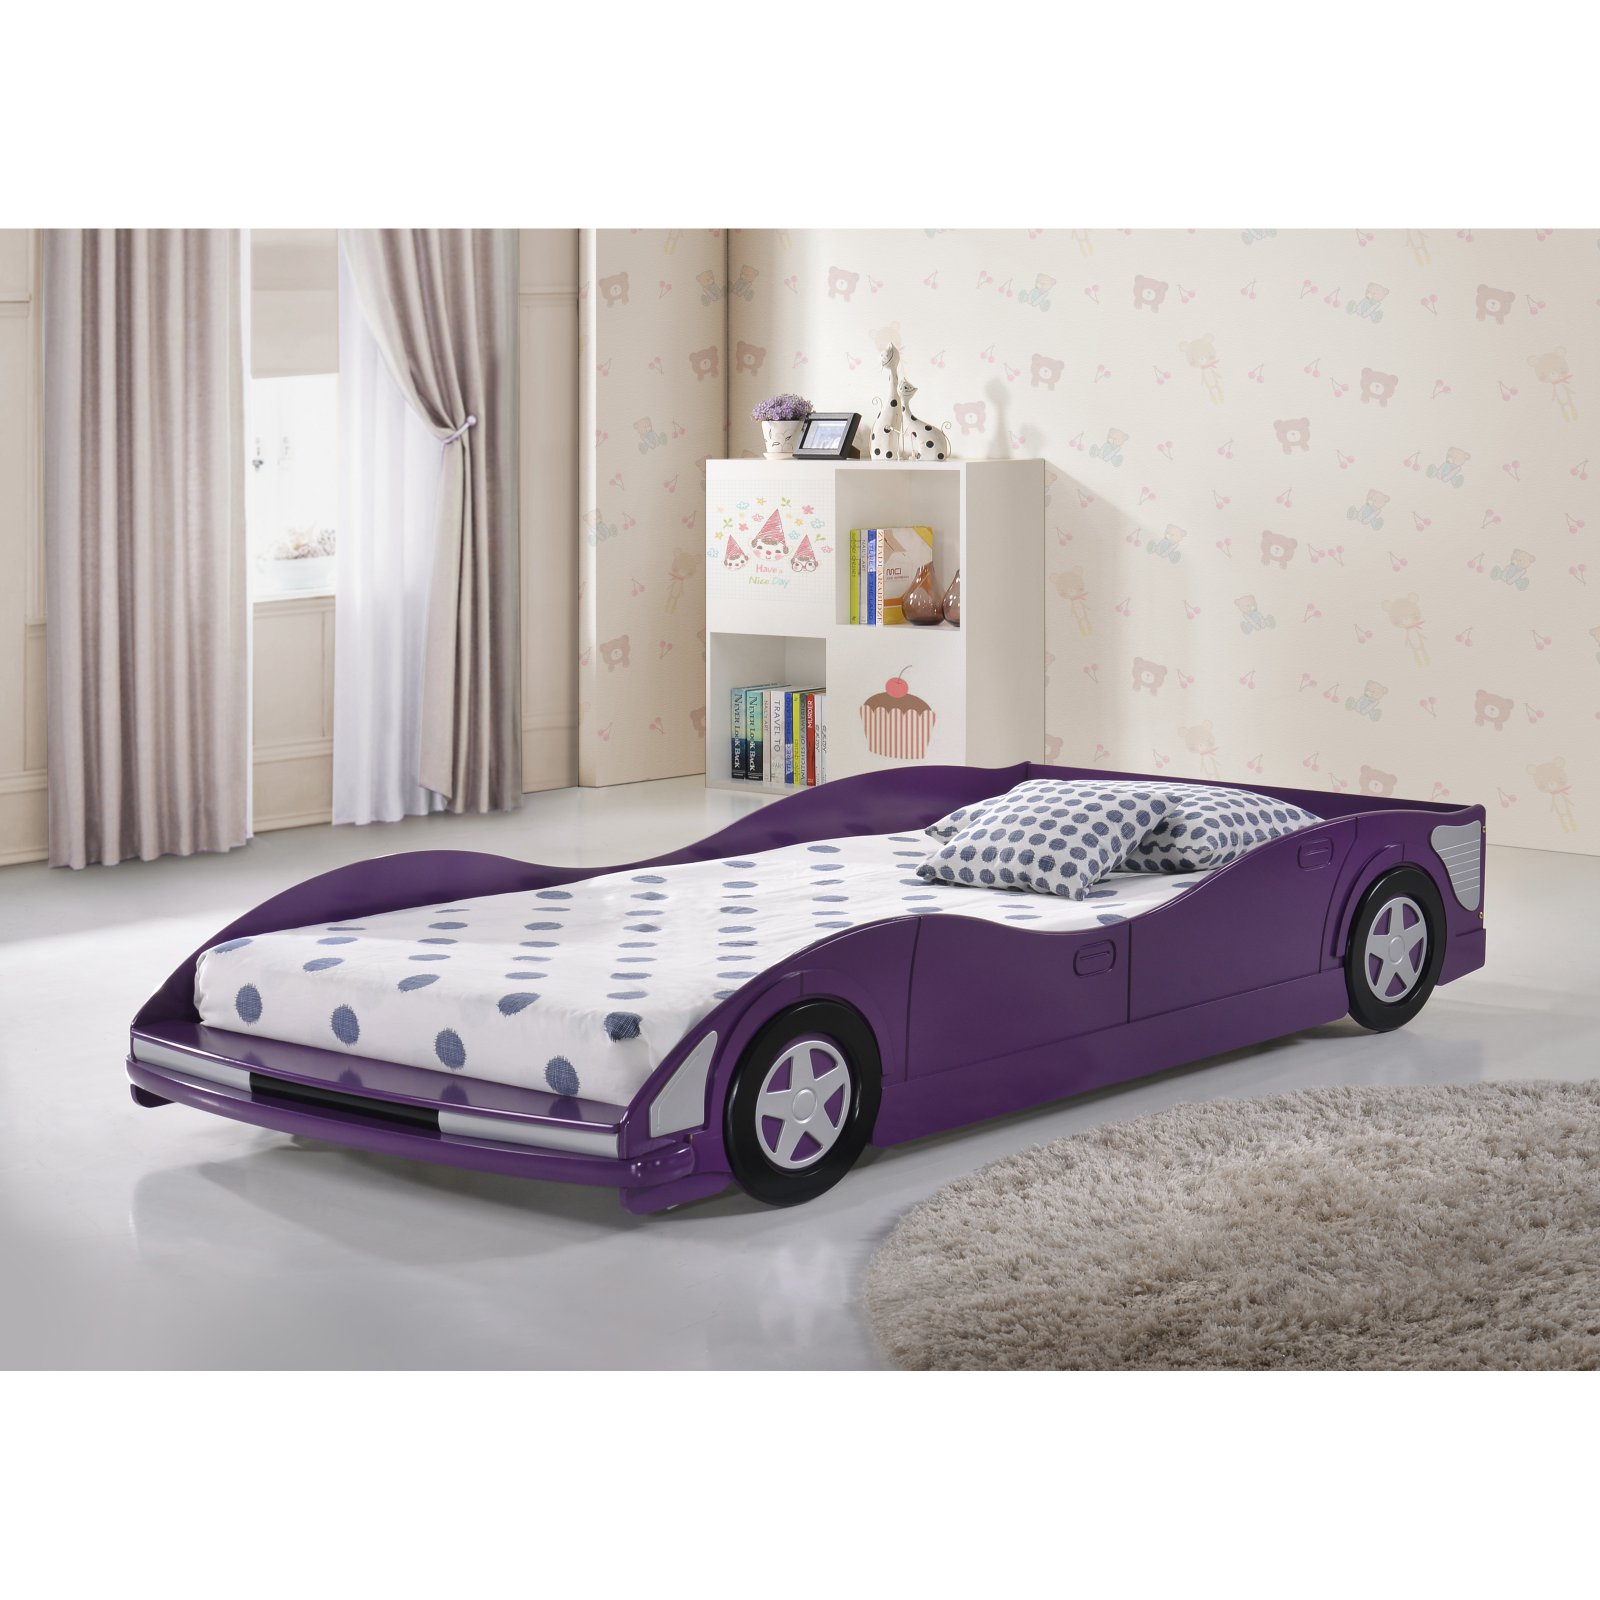 Donco Kids Race Car Bed by Pivot Direct Inc